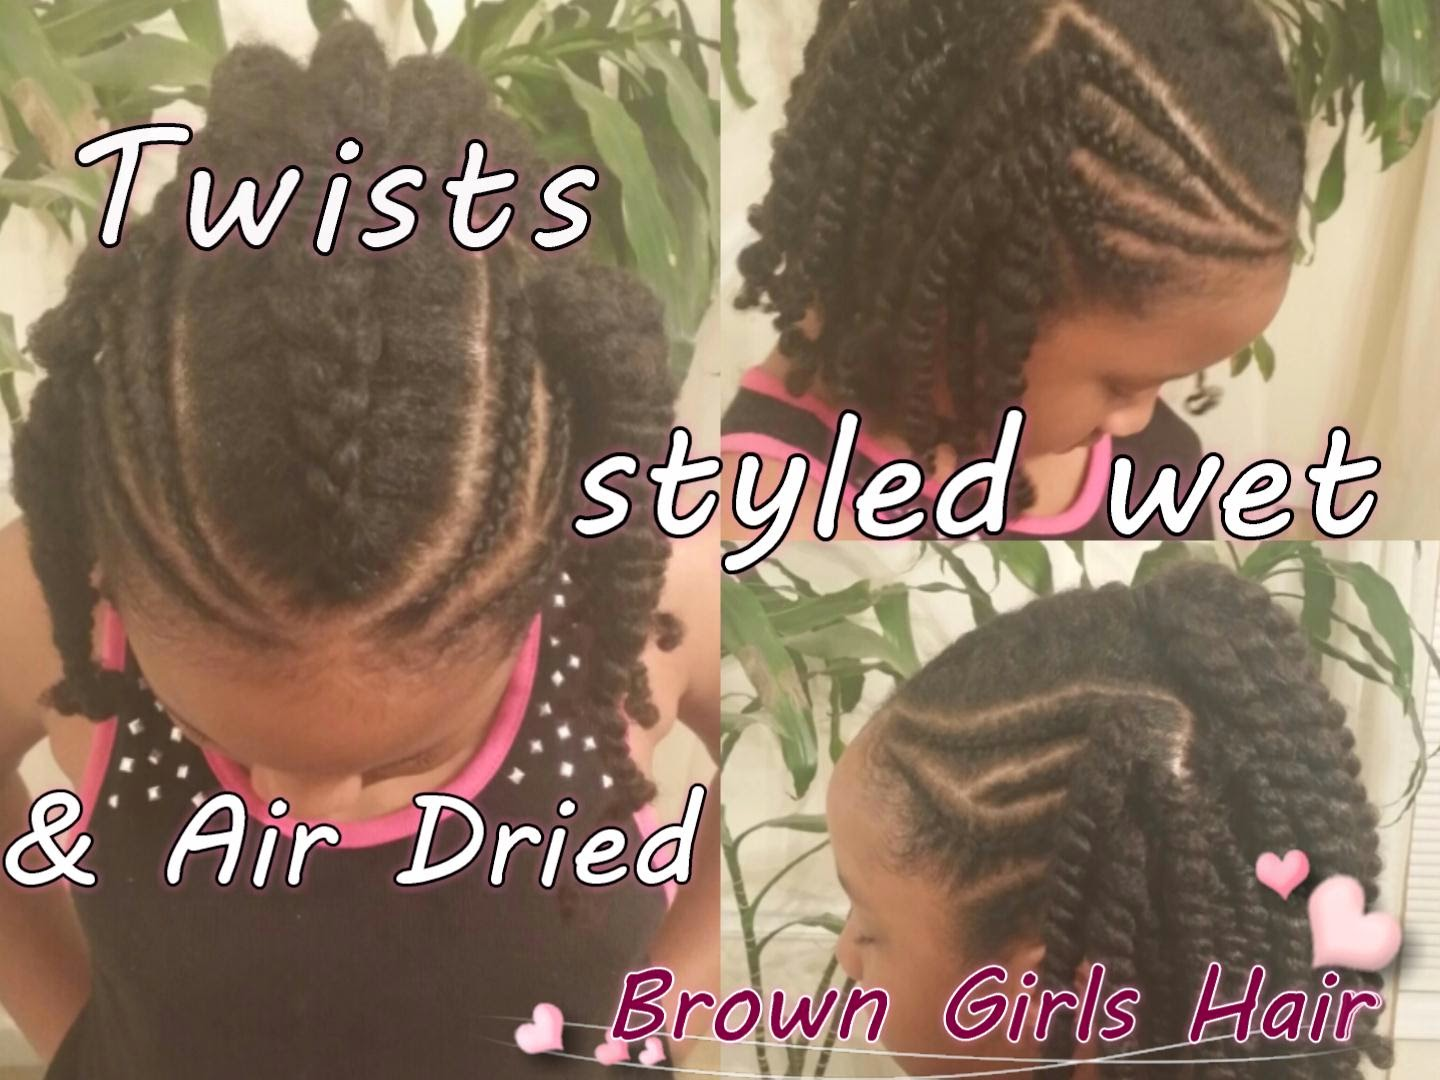 twists, braids, cornrows, kids braids, natural hairstyles, women, girls, tutorials